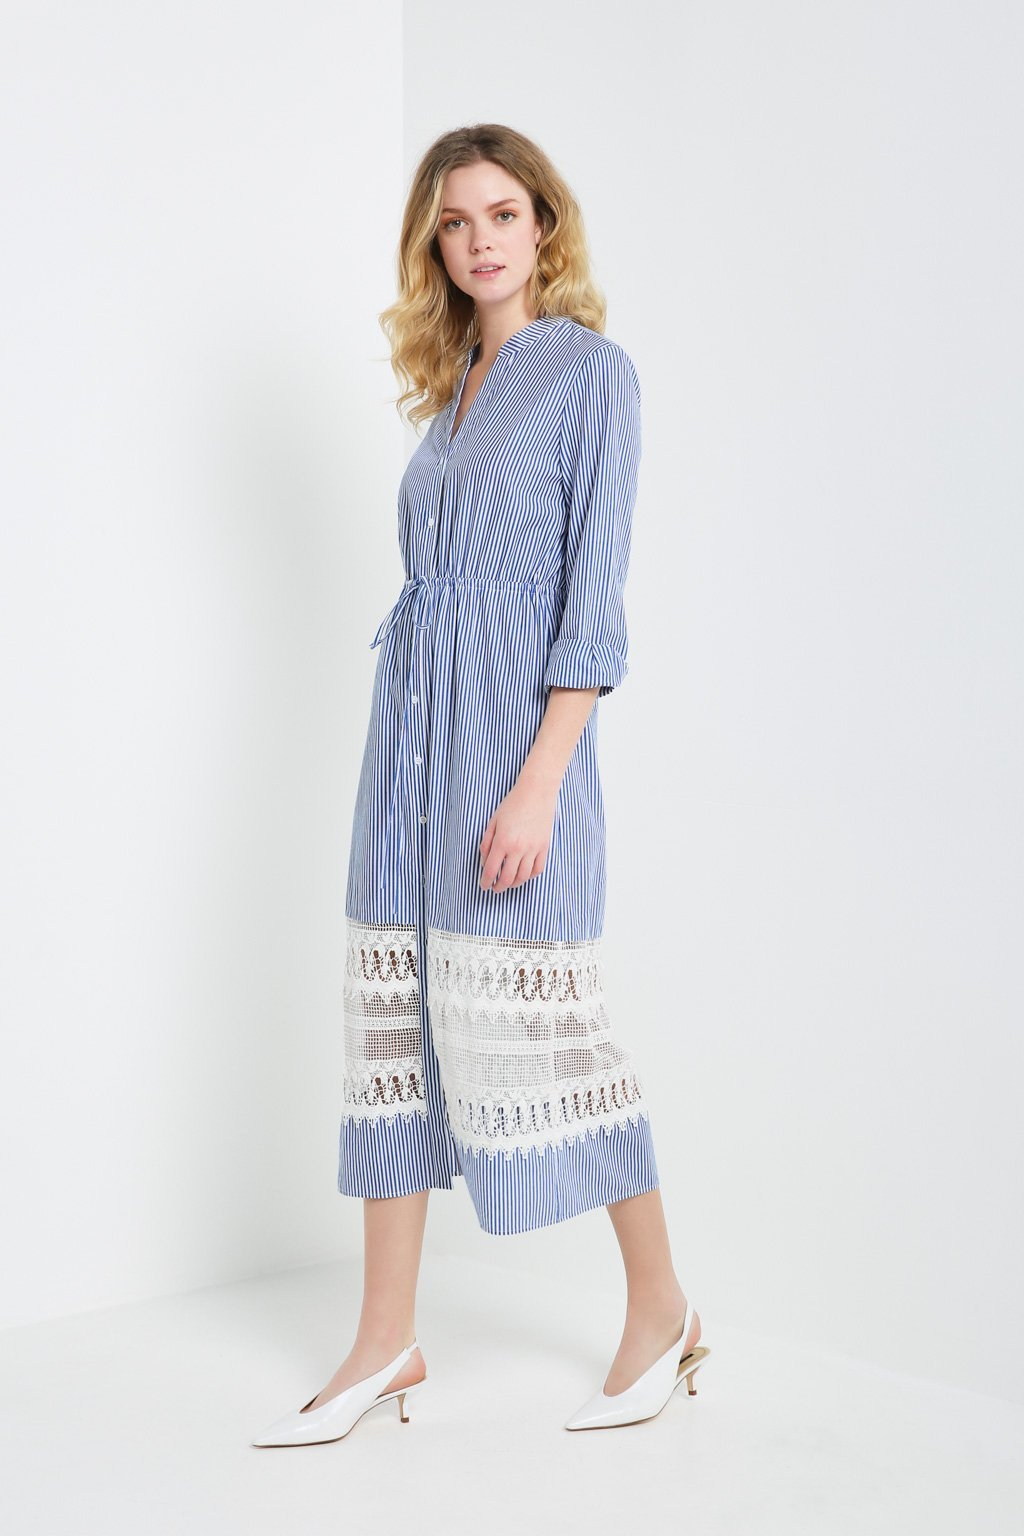 Poshsquare Dress Lace Panel Shirt Dress